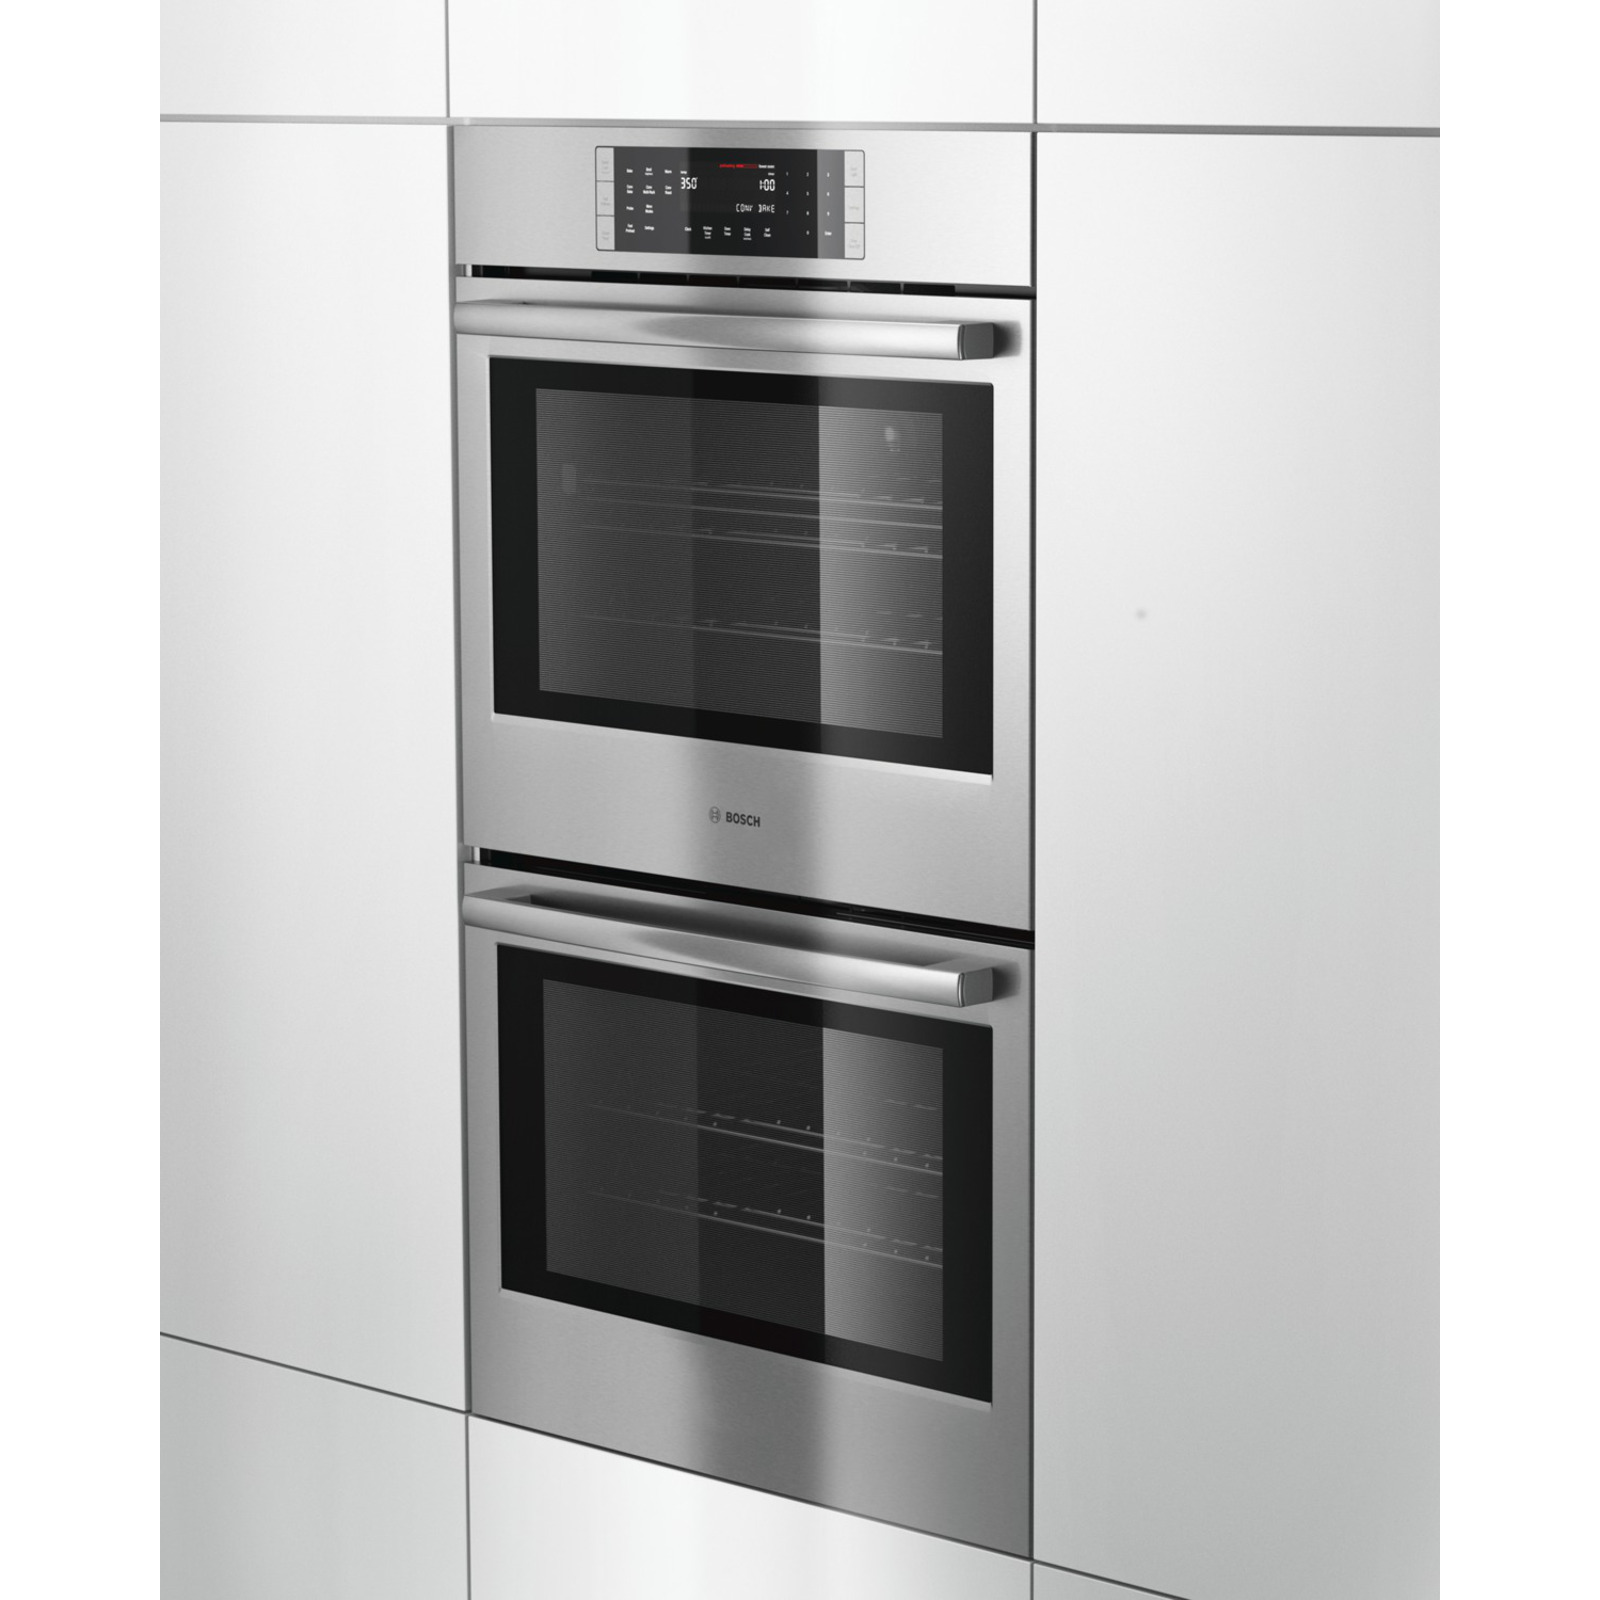 "Bosch HBL8651UC 800 Series 30""  Double Wall Oven - Stainless Steel"